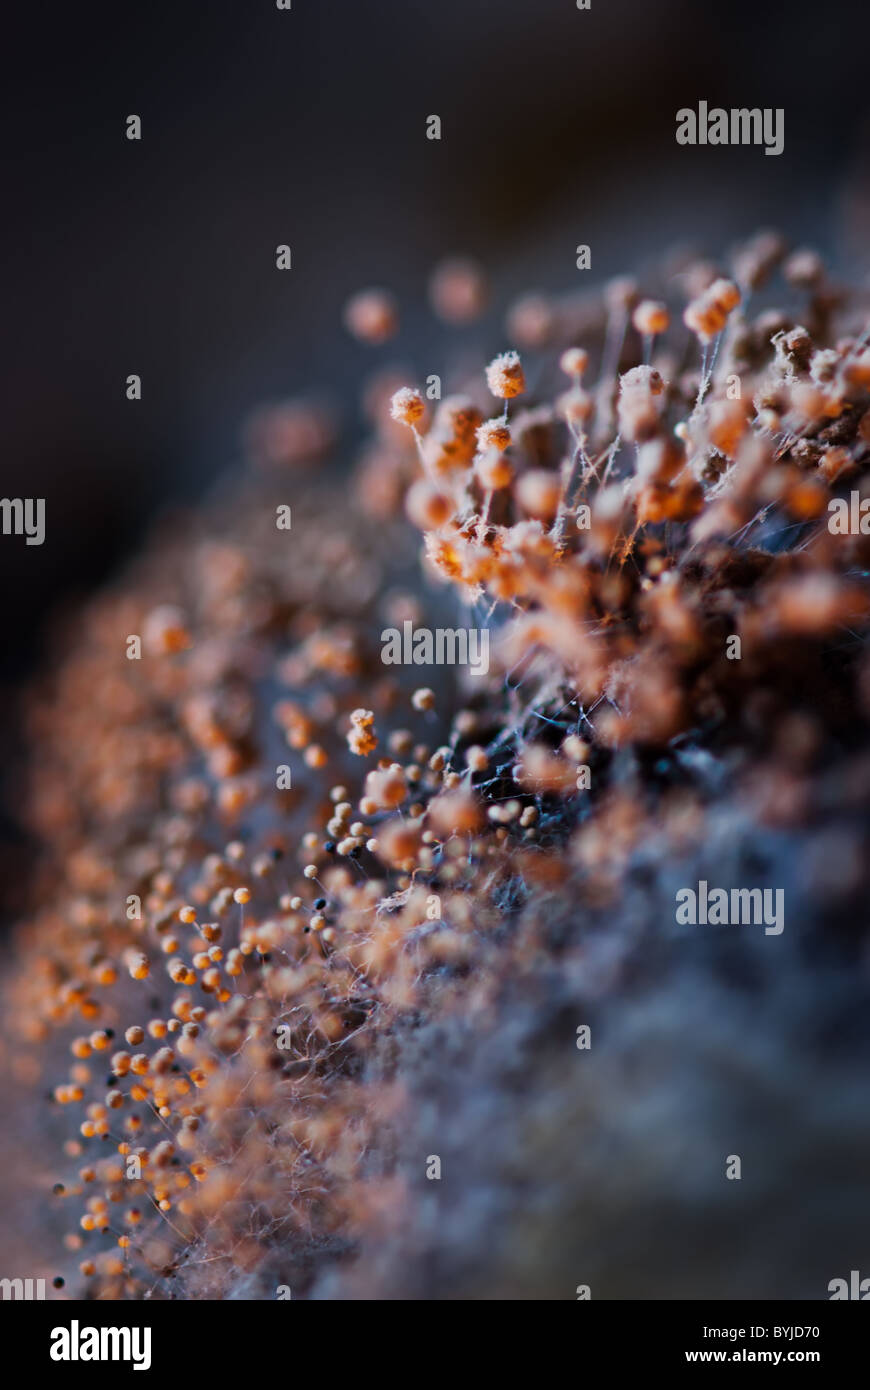 Extreme close up of mildew at bread over texture strengthening special lighting - Stock Image